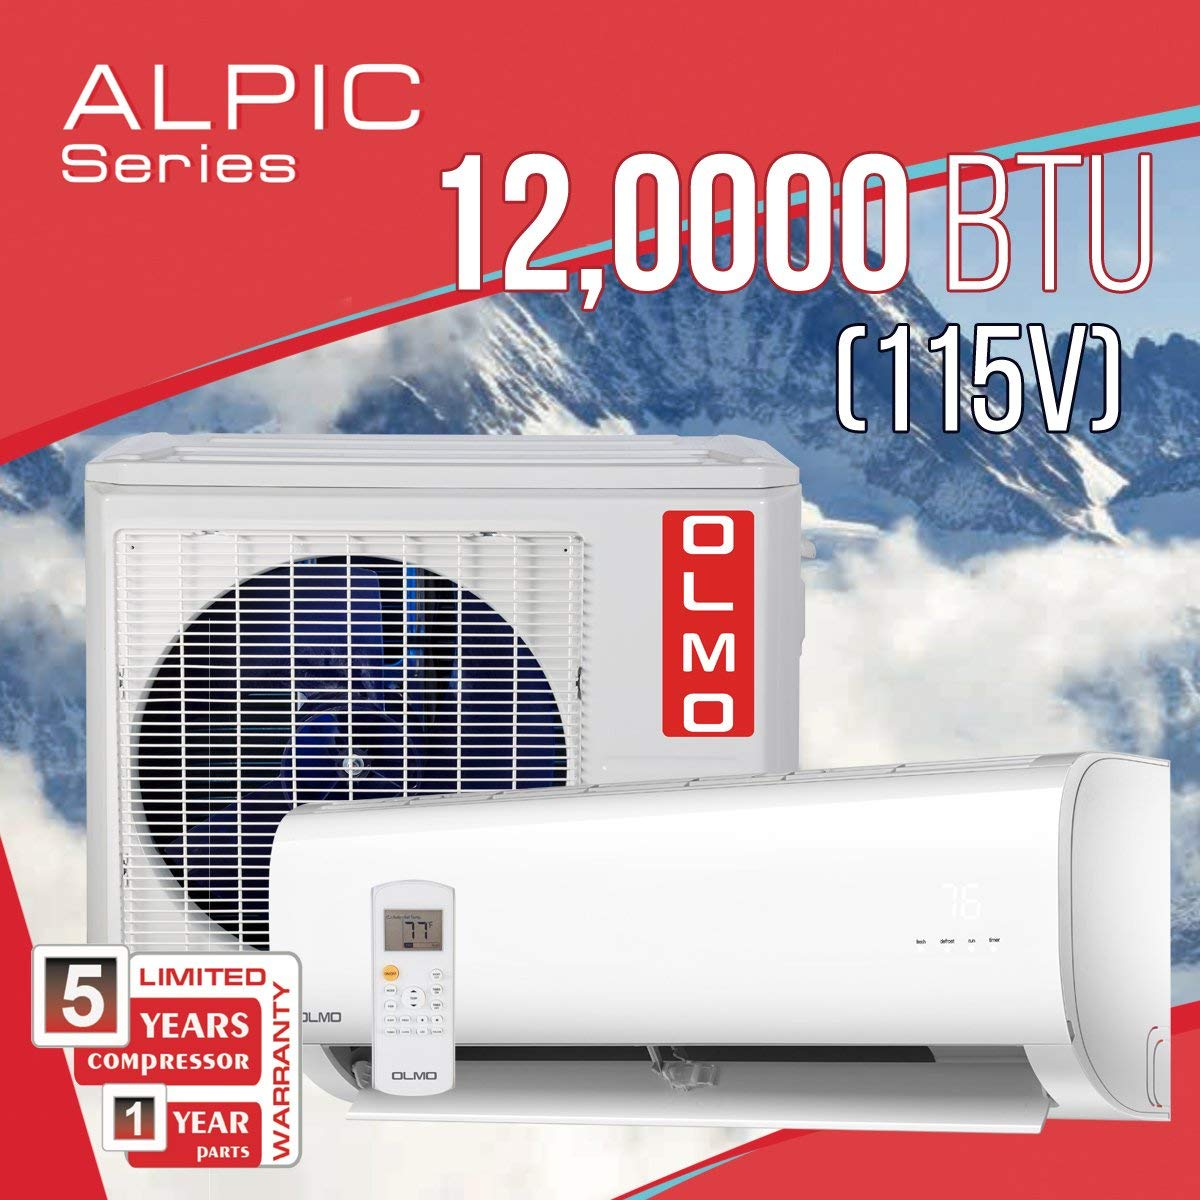 OLMO Alpic 12,000 BTU, 115V Ductless Mini Split Air Conditioner Heat Pump